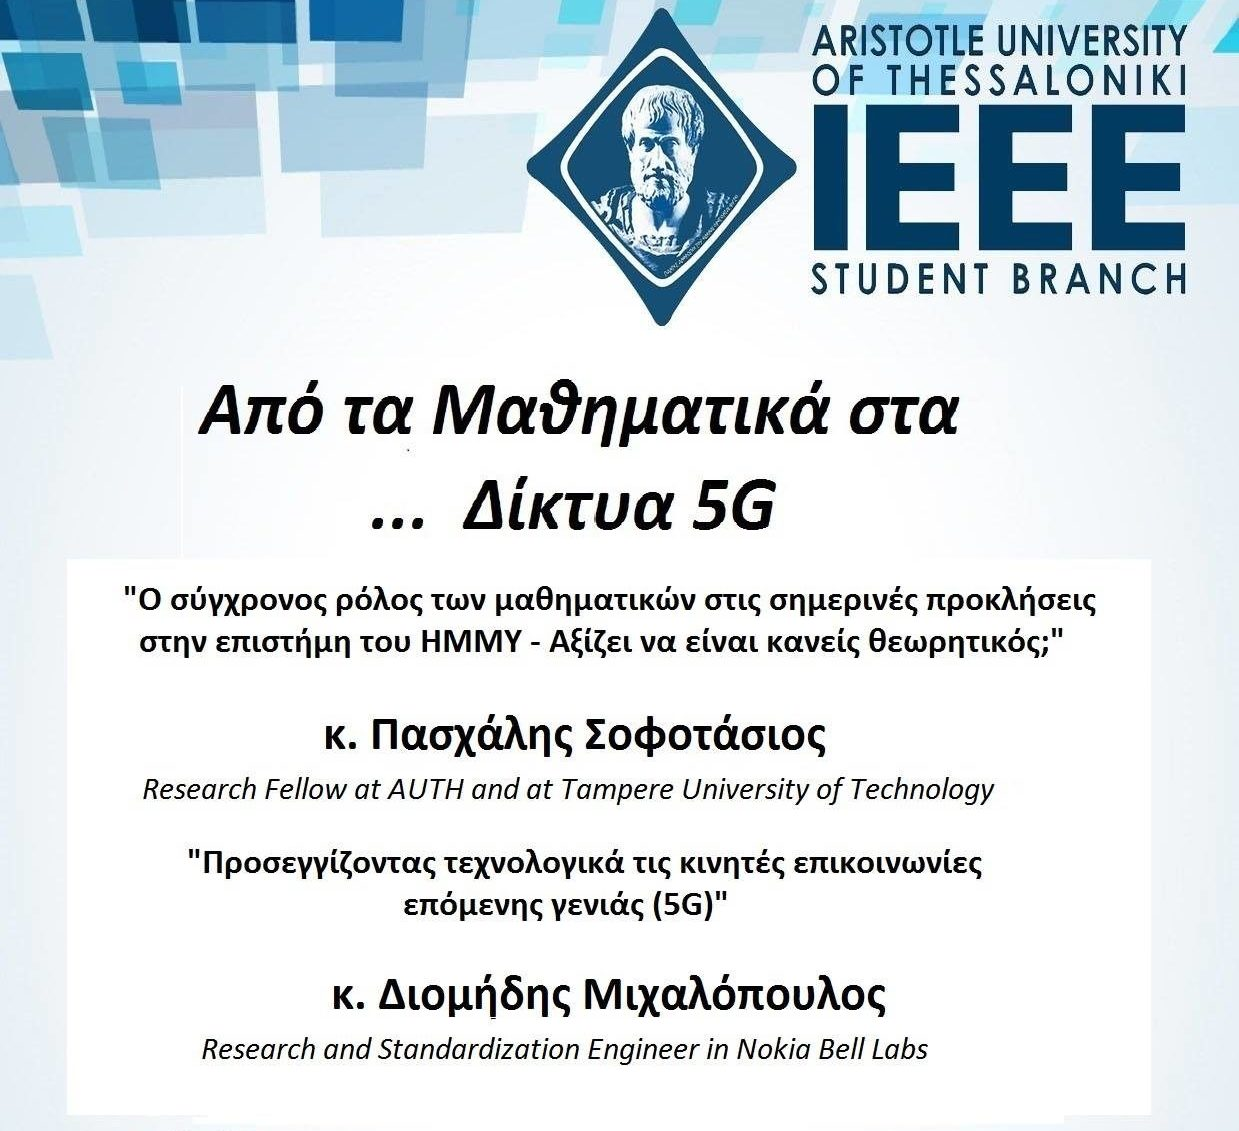 From Mathematics to 5G Networks!